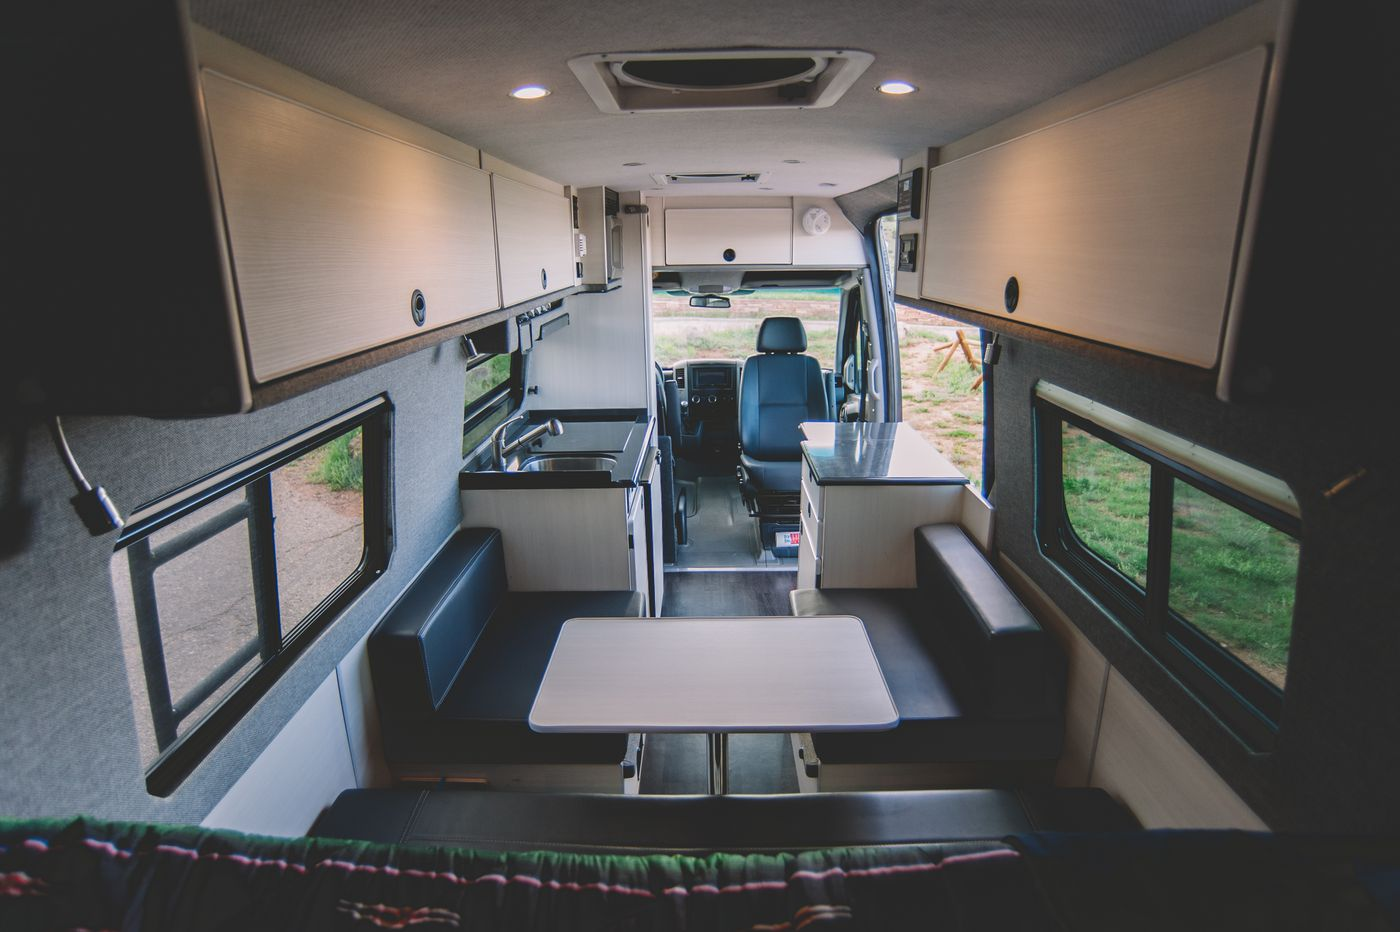 Sportsmobile camper van can sleep a family of 6 - Curbed